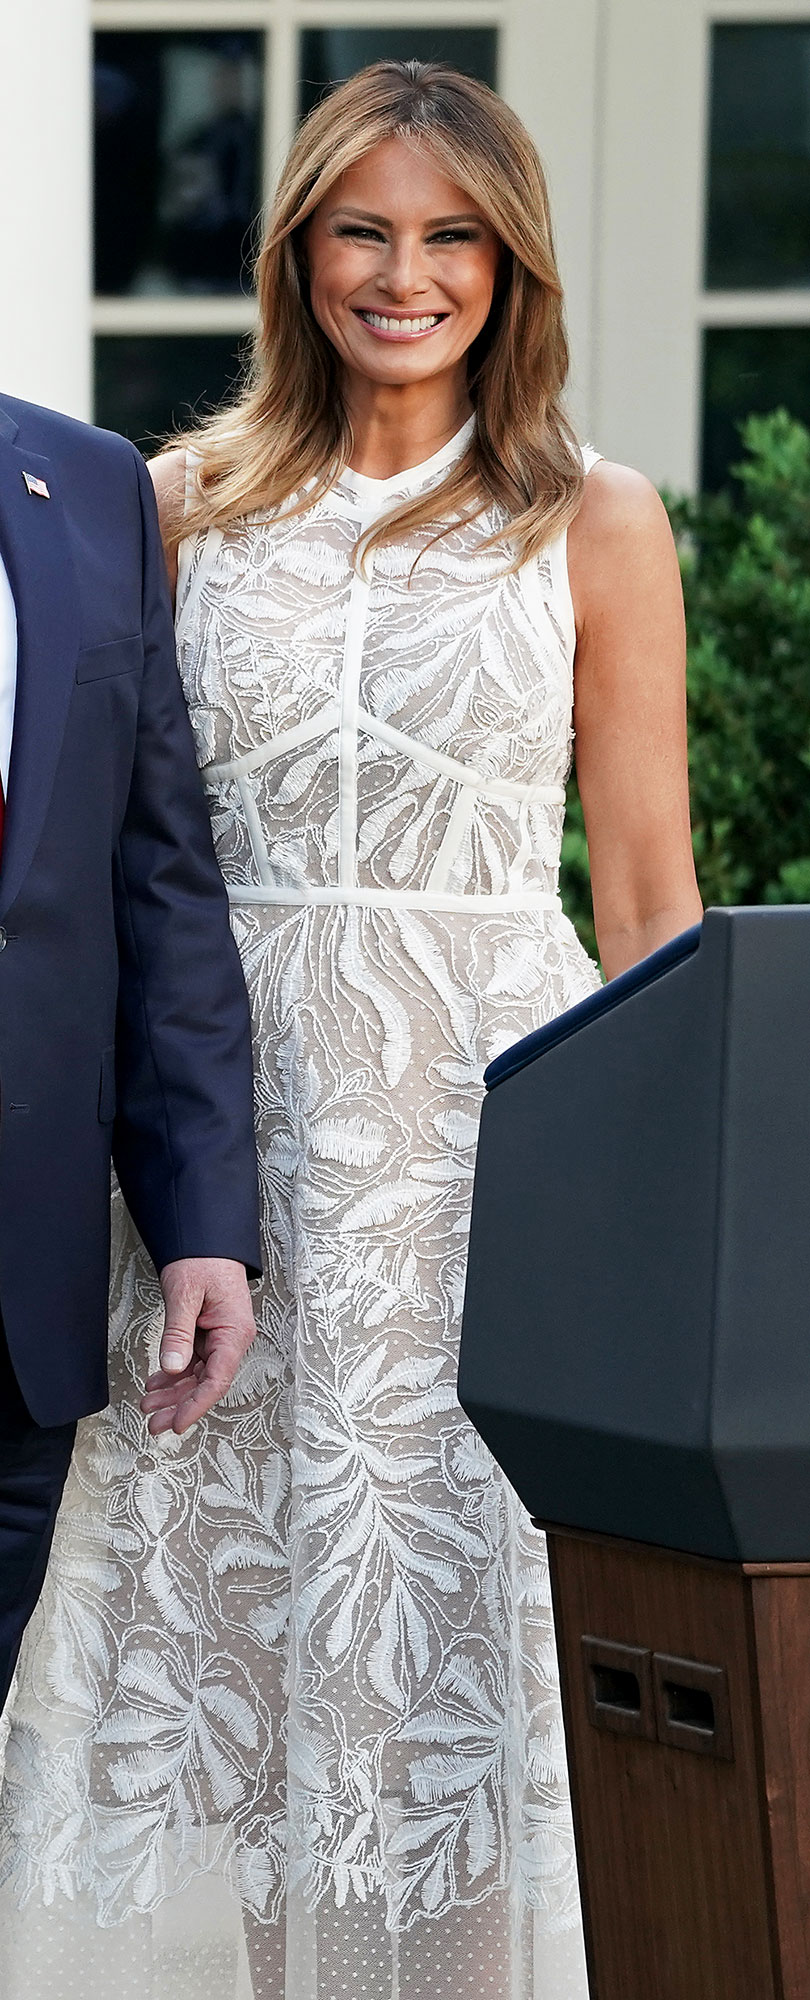 Melania Trump Takes a Page From Duchess Kate by Wearing This Designer - Attending Tiger Woods' Medal of Freedom ceremony in the Rose Garden at the White House, Mrs. Trump wore a $7,450 Elie Saab illusion mididress that she first debuted at the 2018 NATO Summit.